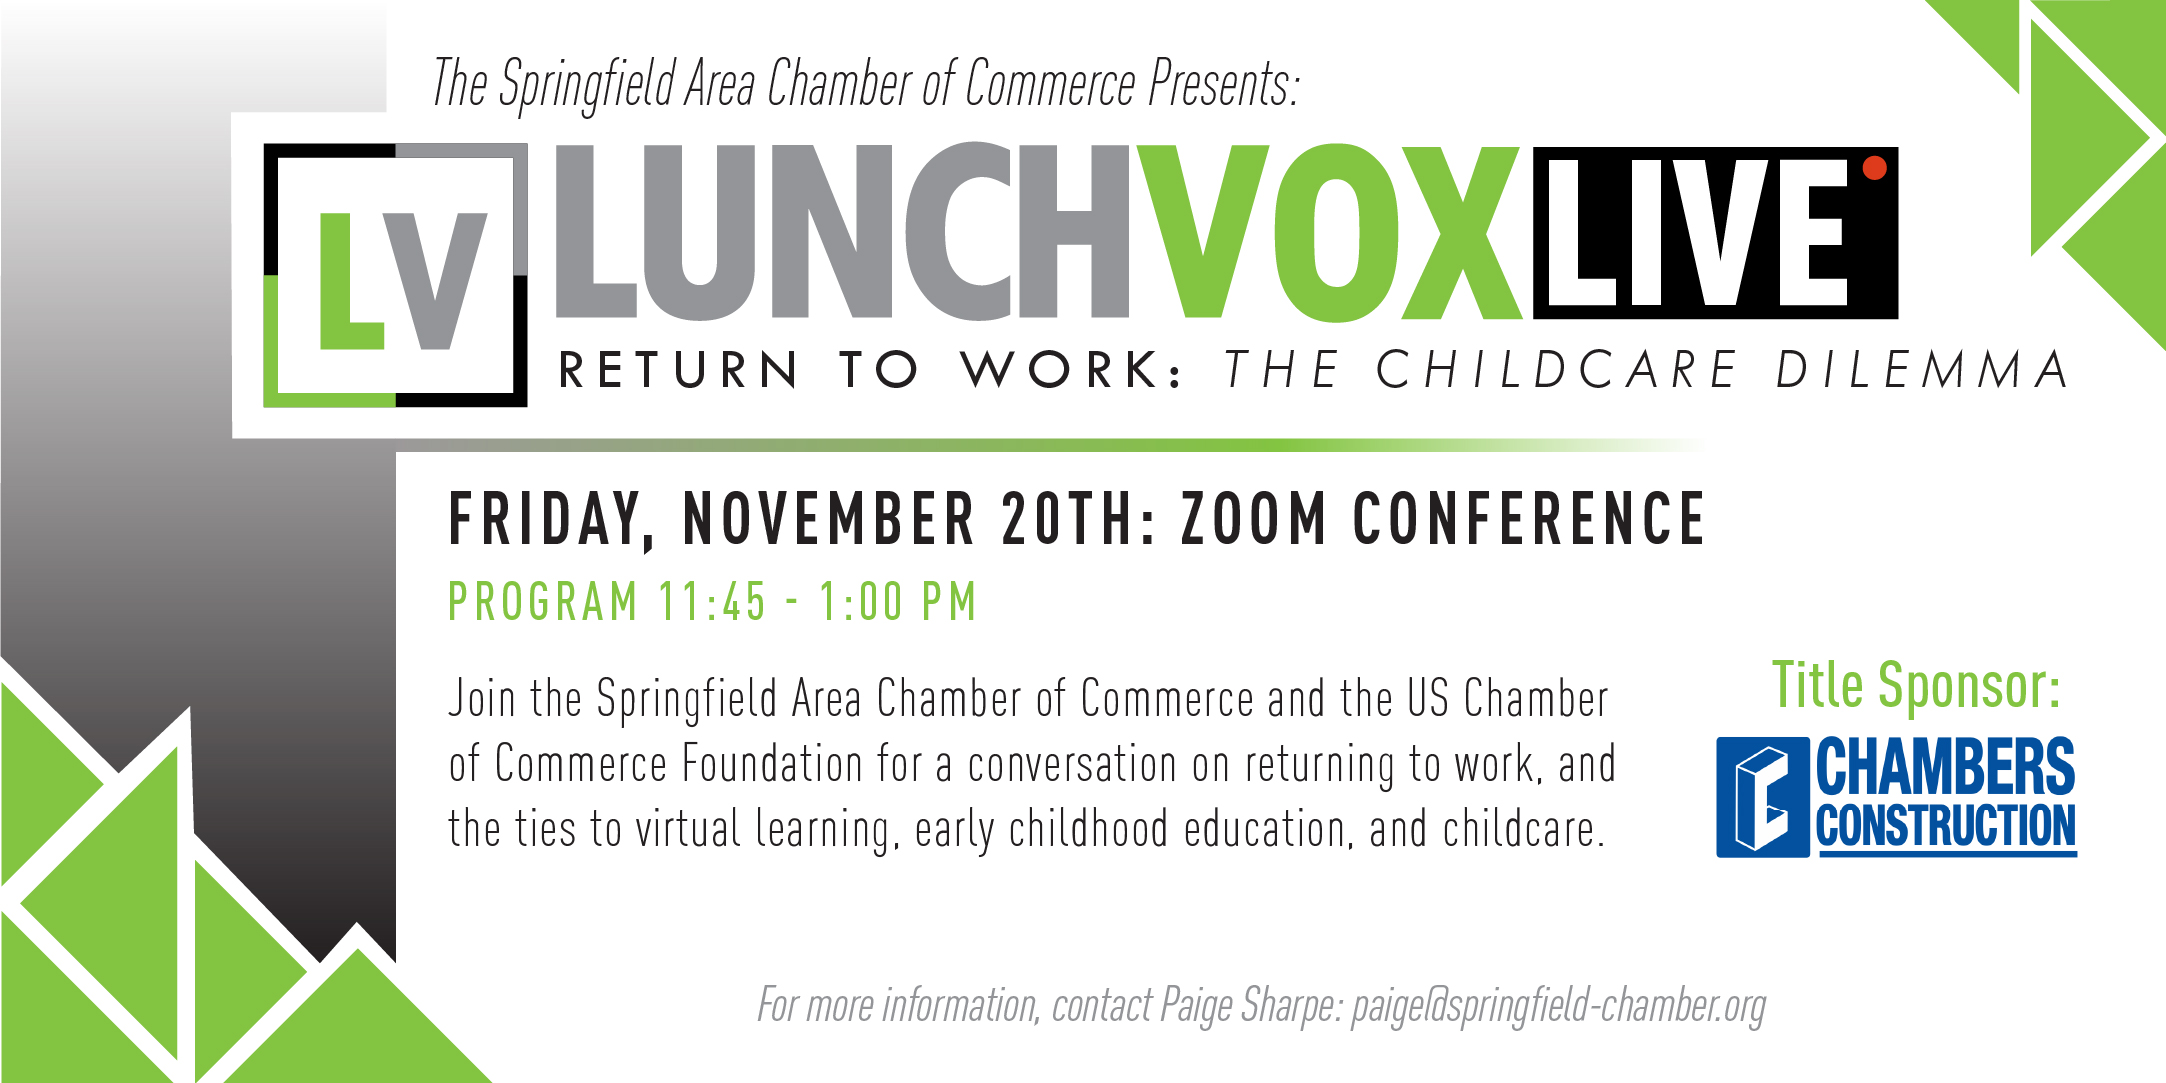 LunchVox LIVE: Return to Work - The Childcare Dilemma